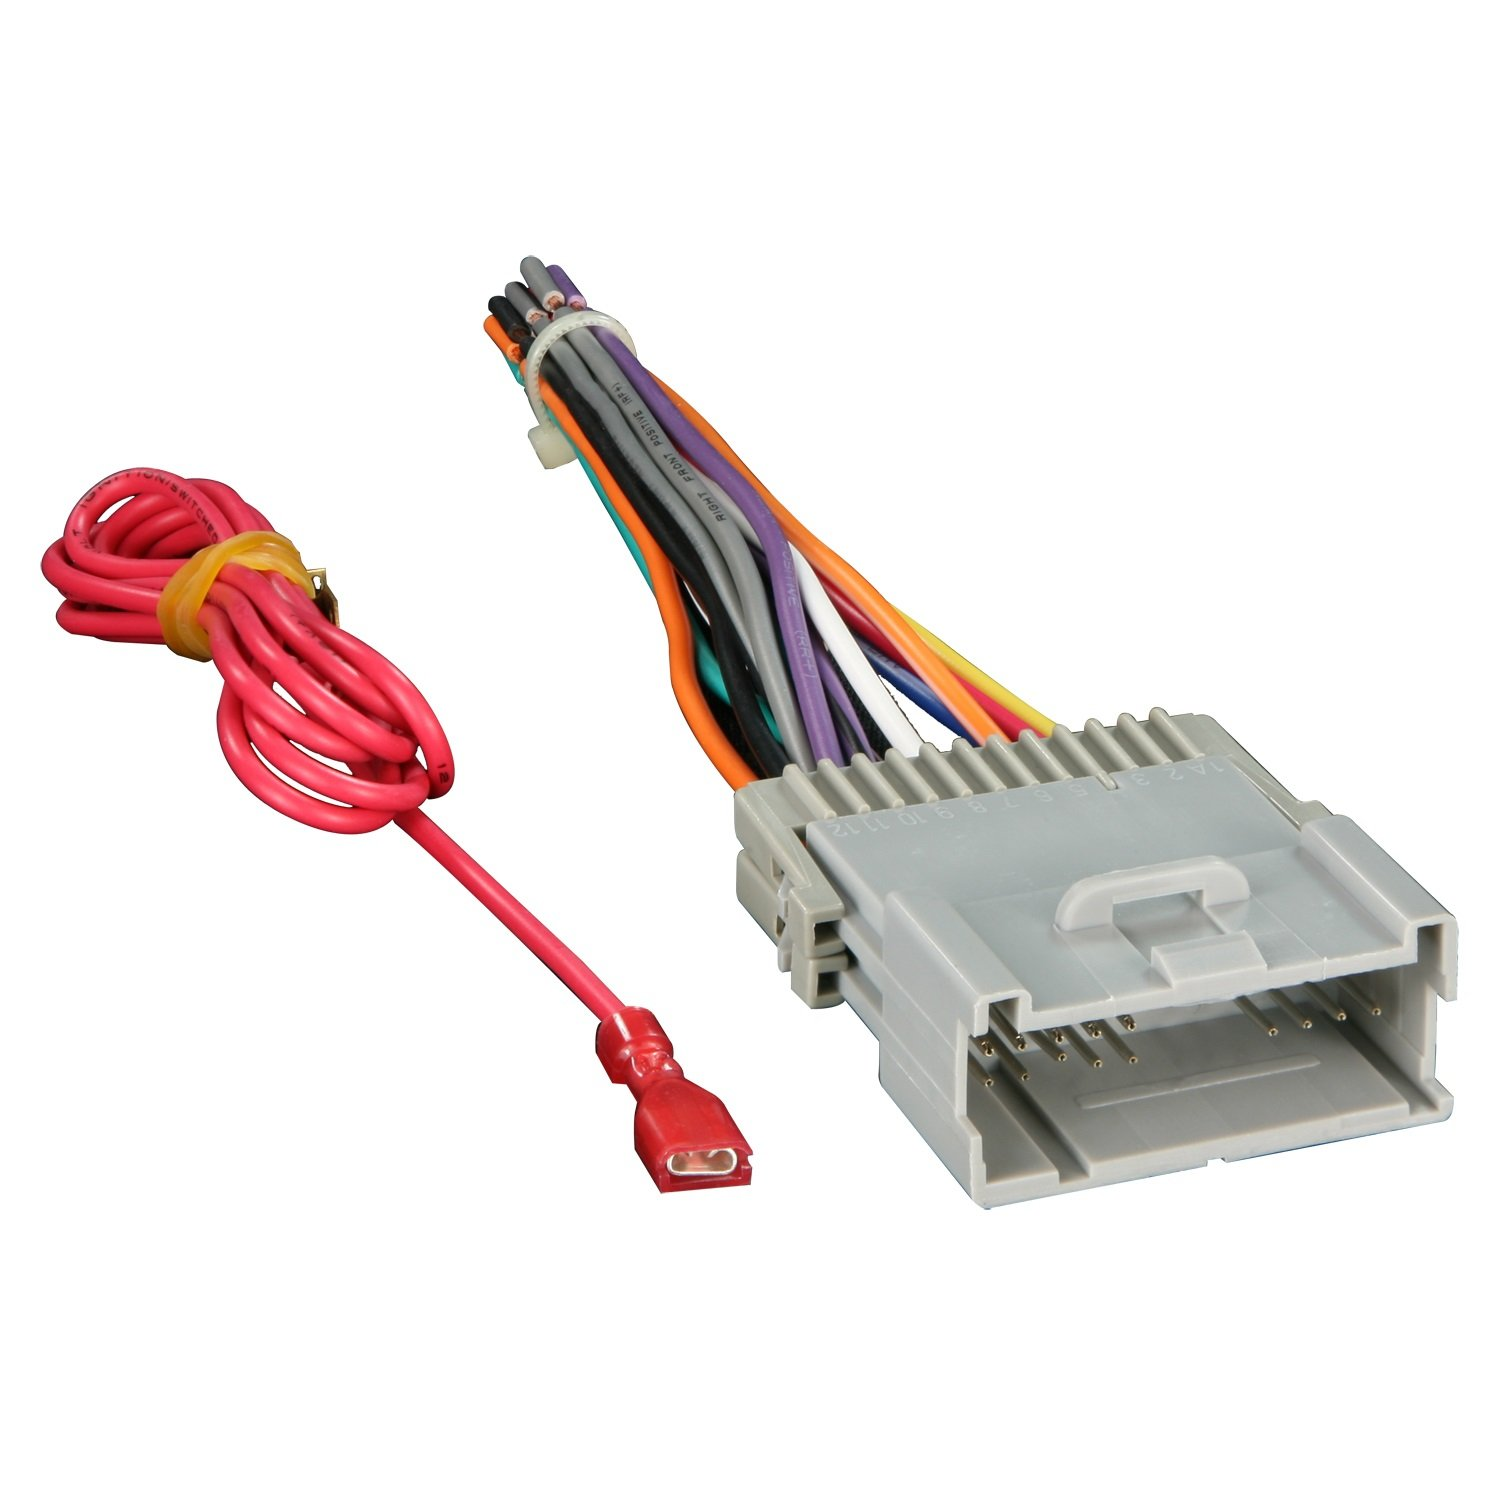 61eewxp9orL._SL1500_ amazon com metra 70 2003 radio wiring harness for gm 98 08 how to wire stereo without harness 95 camry at bayanpartner.co